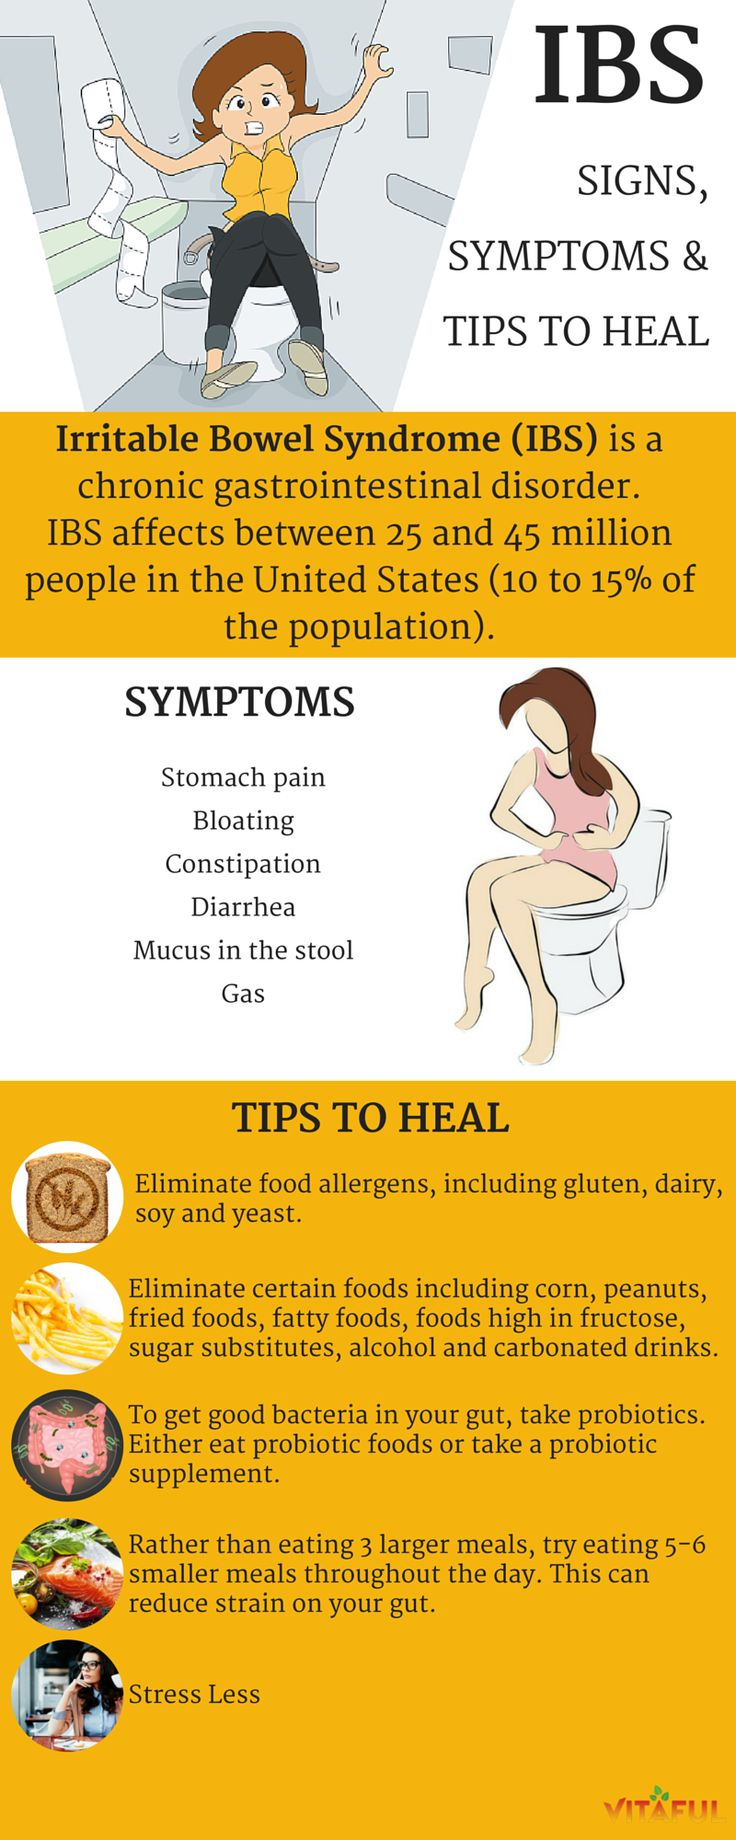 Gut Health: Learn About IBS, Along With The Signs, Symptoms and Tips To Heal.